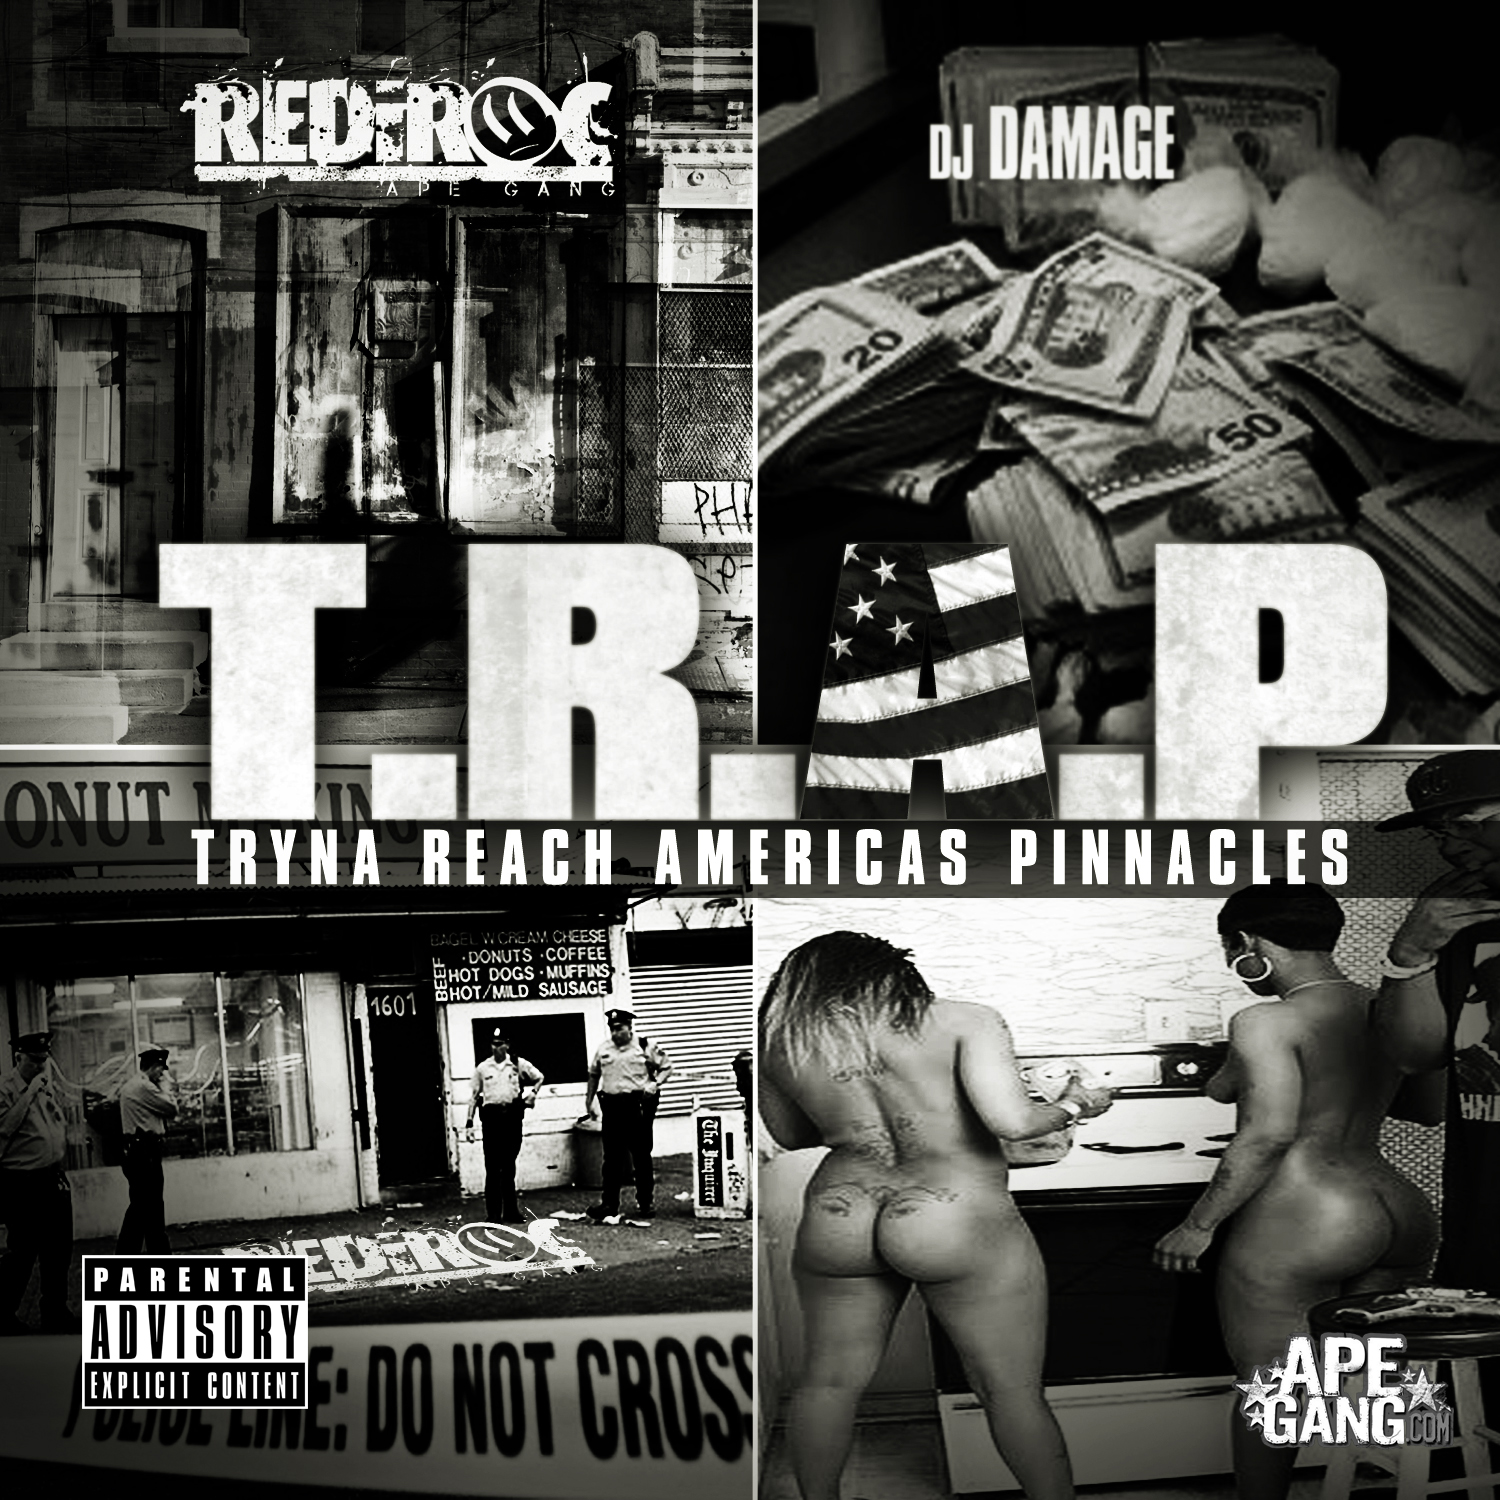 REDiROC (@Rediroc215) – T.R.A.P. [TRYNA REACH AMERICAS PINNACLE] Hosted by @DJfnDamage